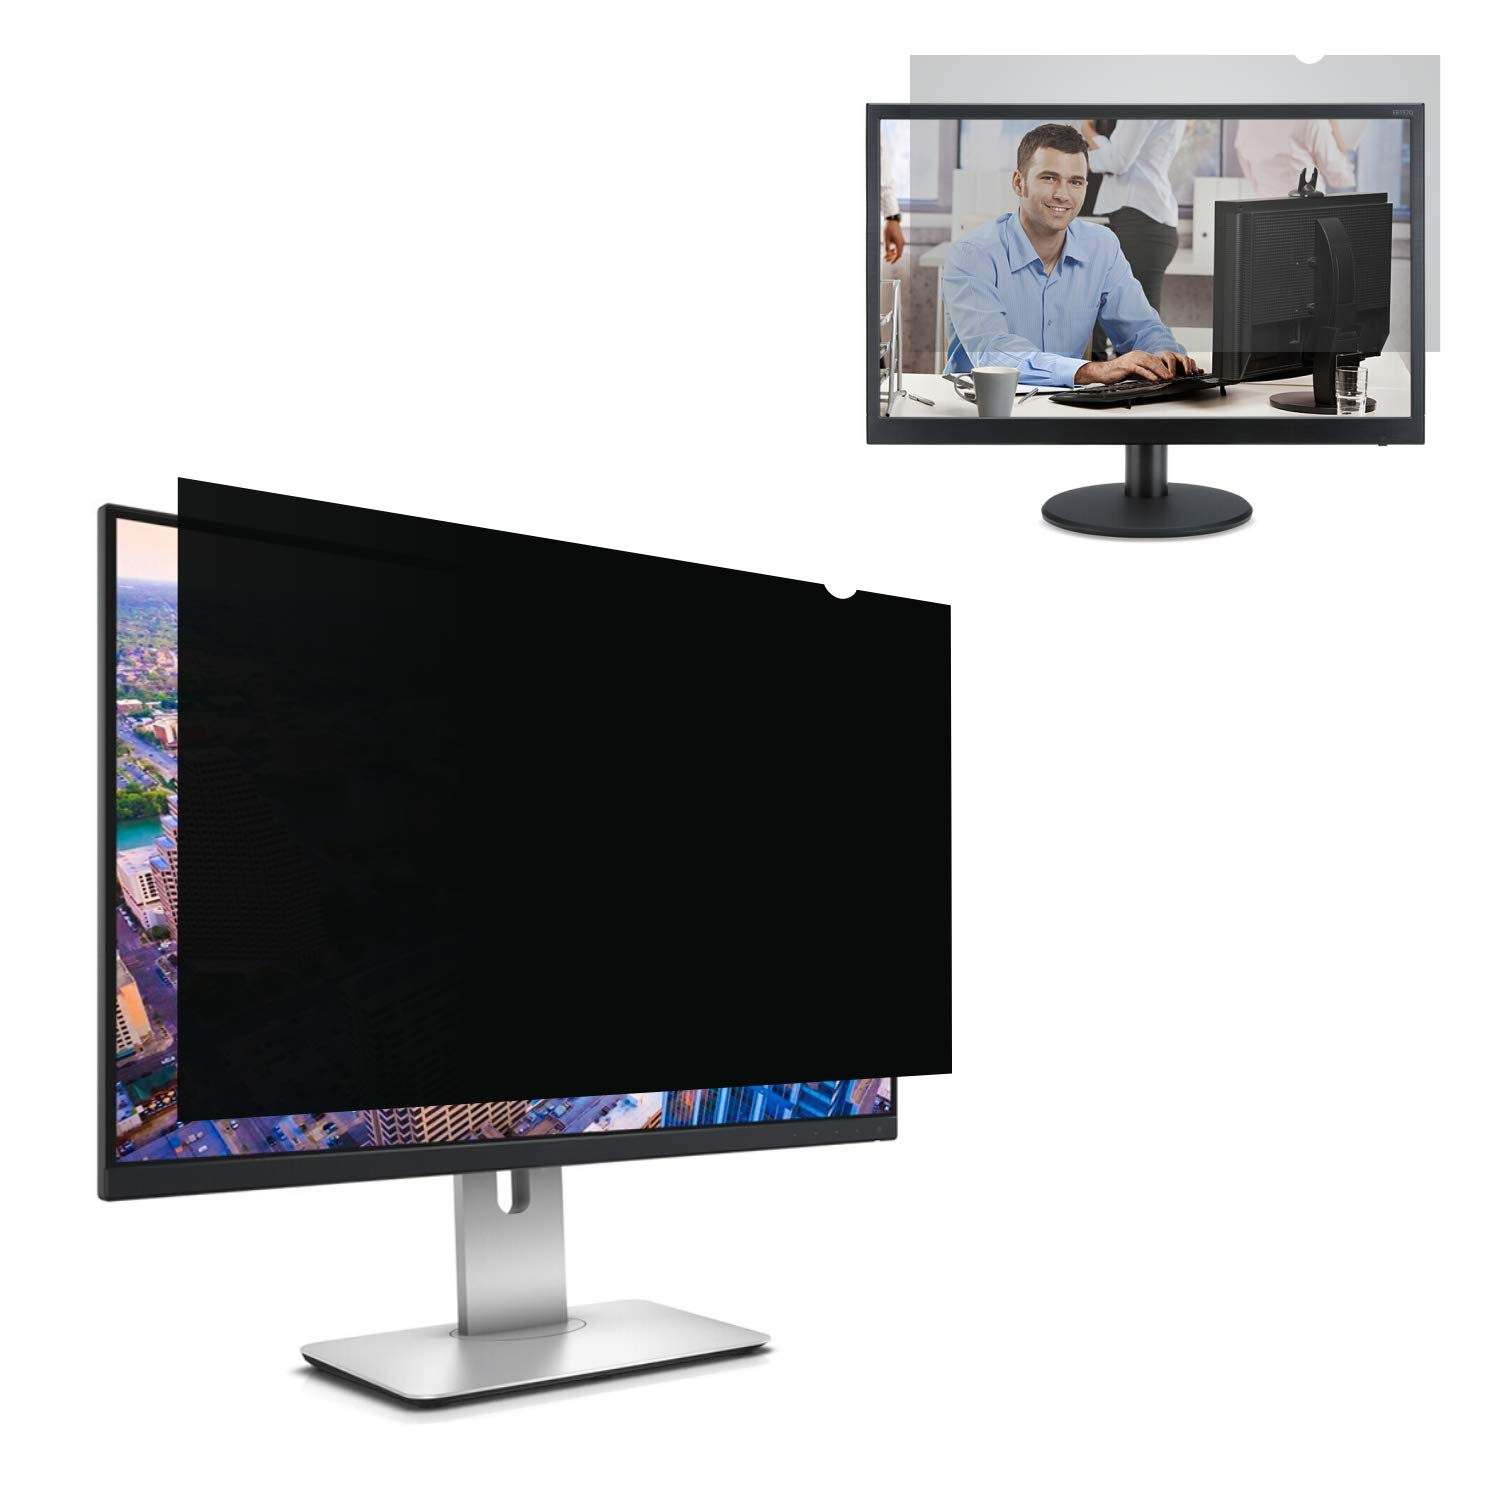 Accgonon Computer Privacy Screen Filters for 25-inch Widescreen(16:9) Monitor Privacy Screen Protector,Anti-Glare Anti-Spy Anti-Blue Scratch and UV Protection,Easy Install by ACCGONON (Image #1)